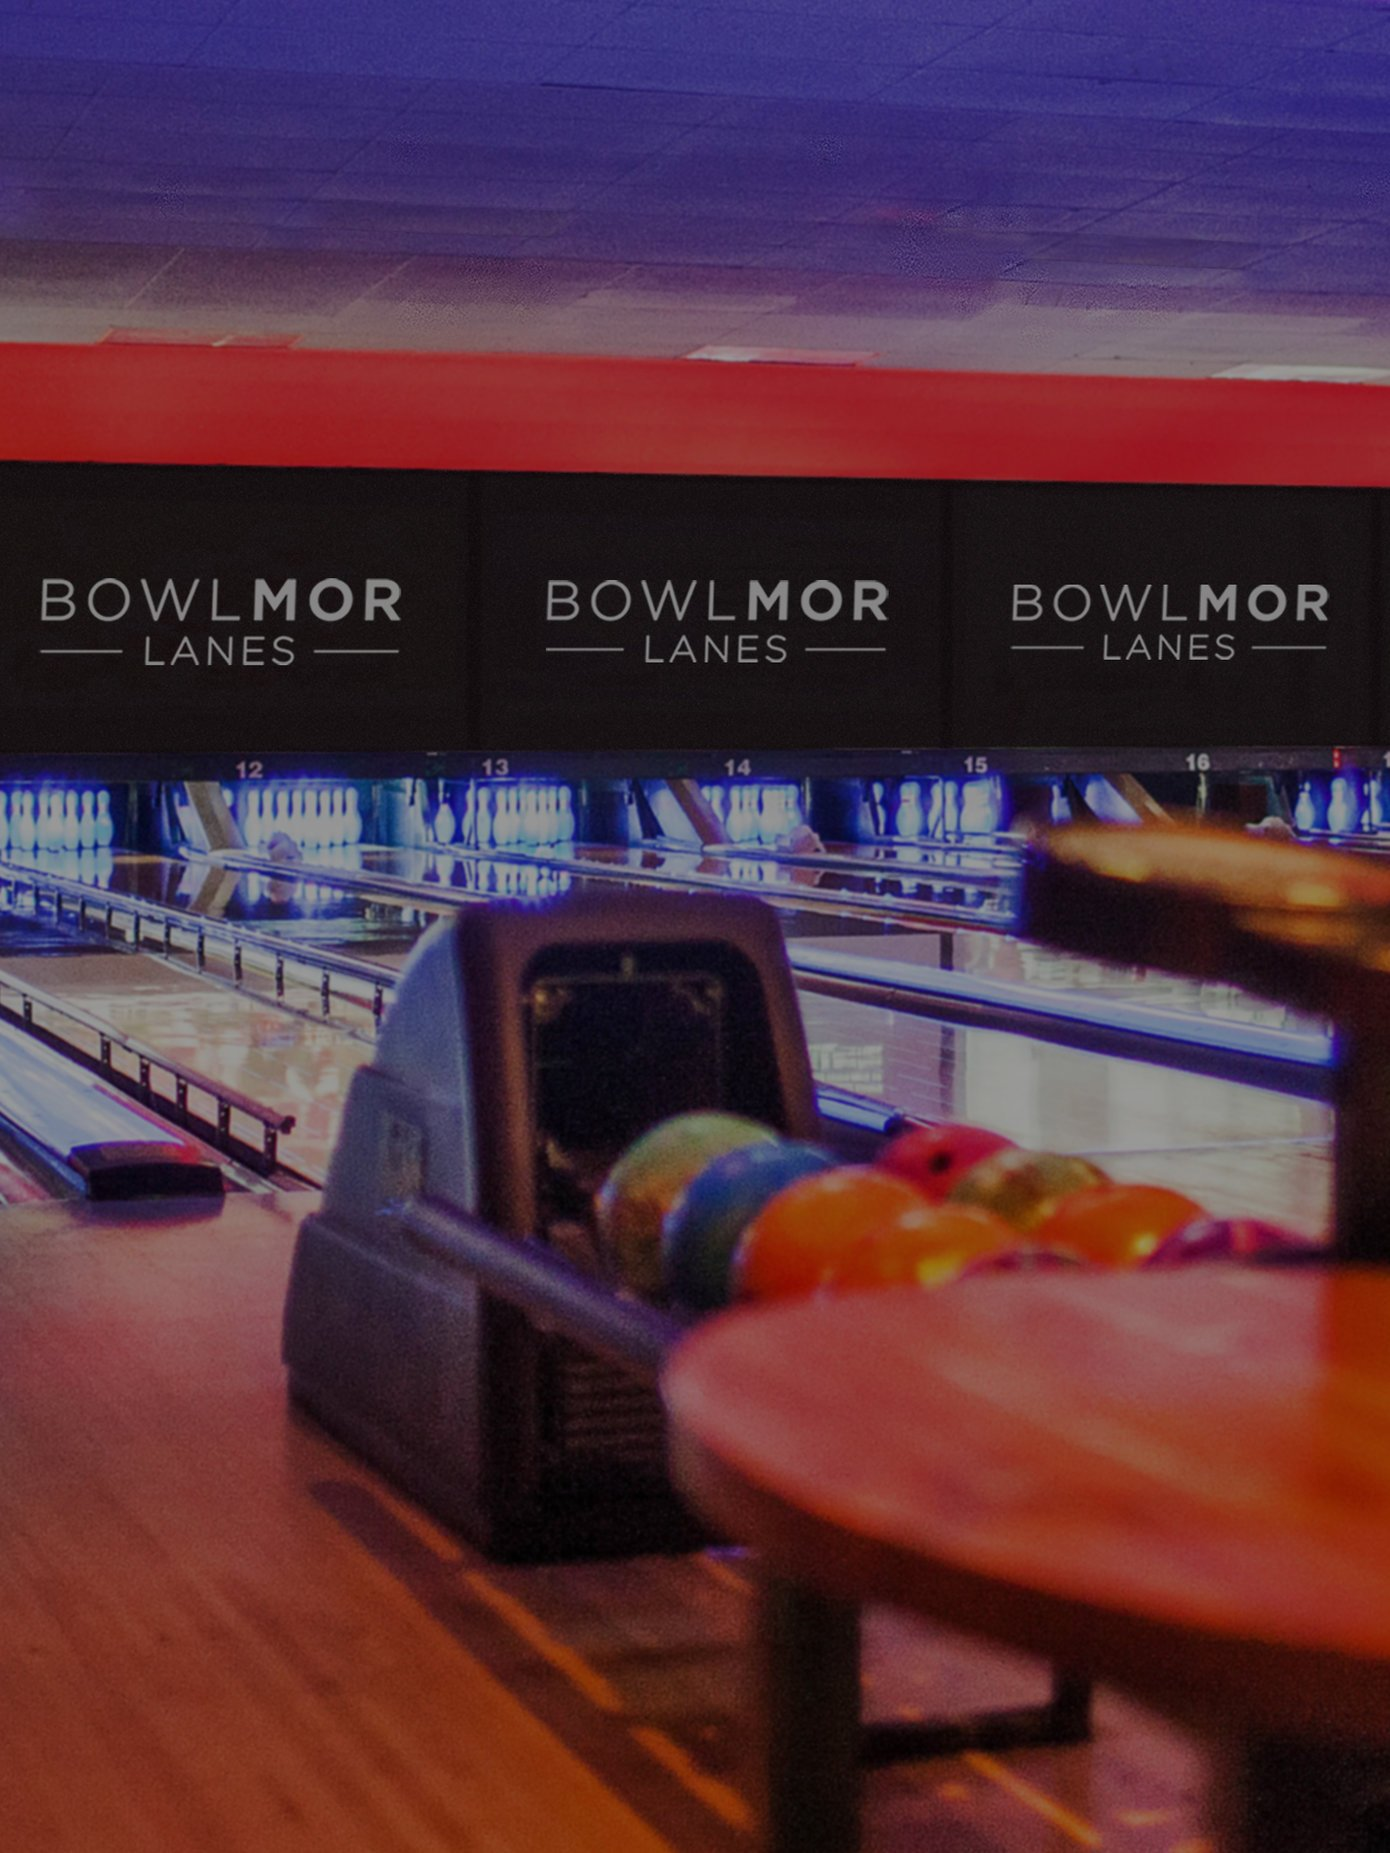 Bowling Alley & Sports Bar in Atlanta | Bowlmor